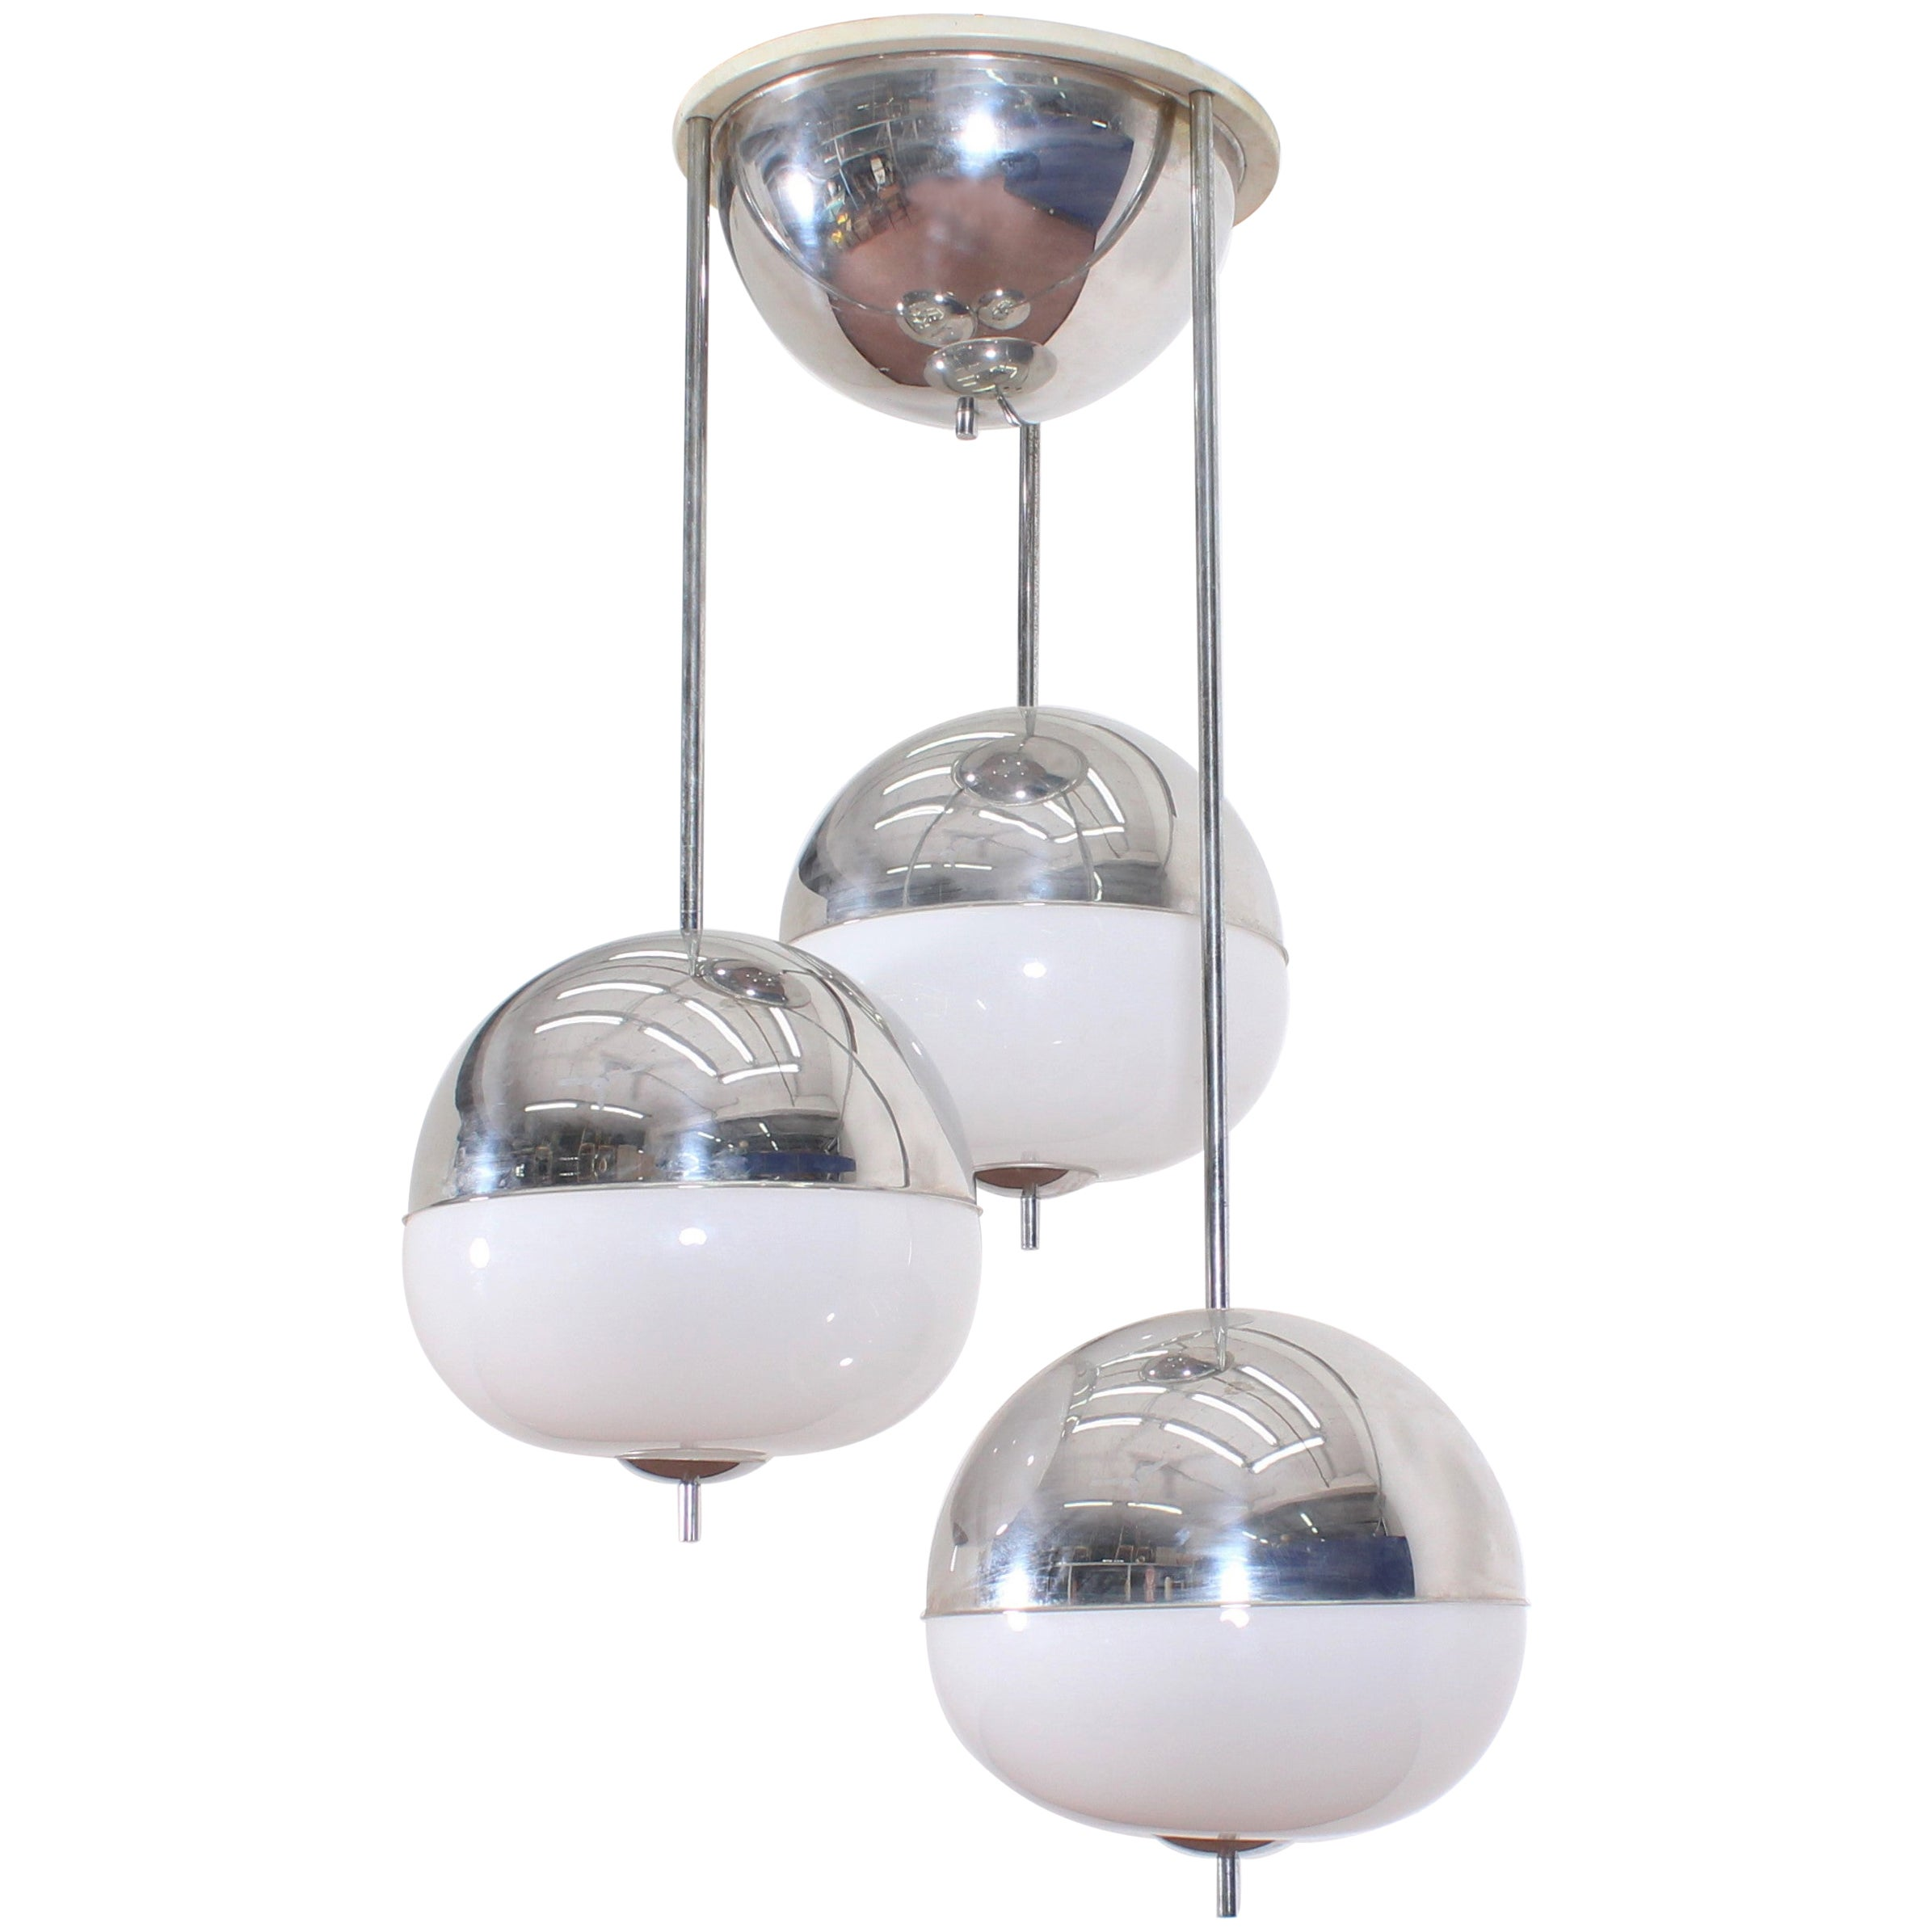 Midcentury Reggiani Chromed Metal and Glass Suspension Chandelier, Italy, 1960s